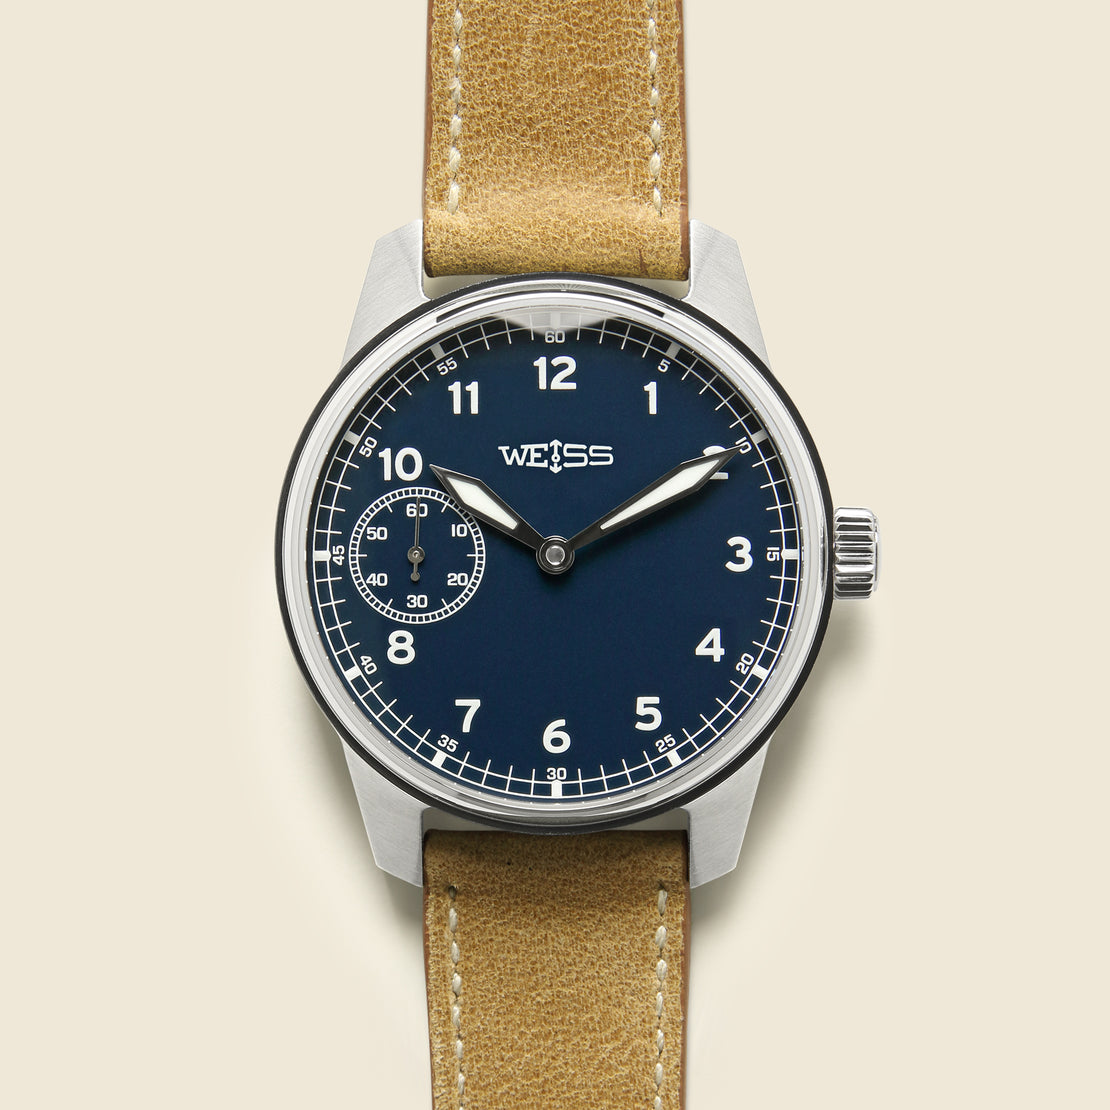 Weiss Watch Co Standard Issue Field Watch 38mm - White/Olive